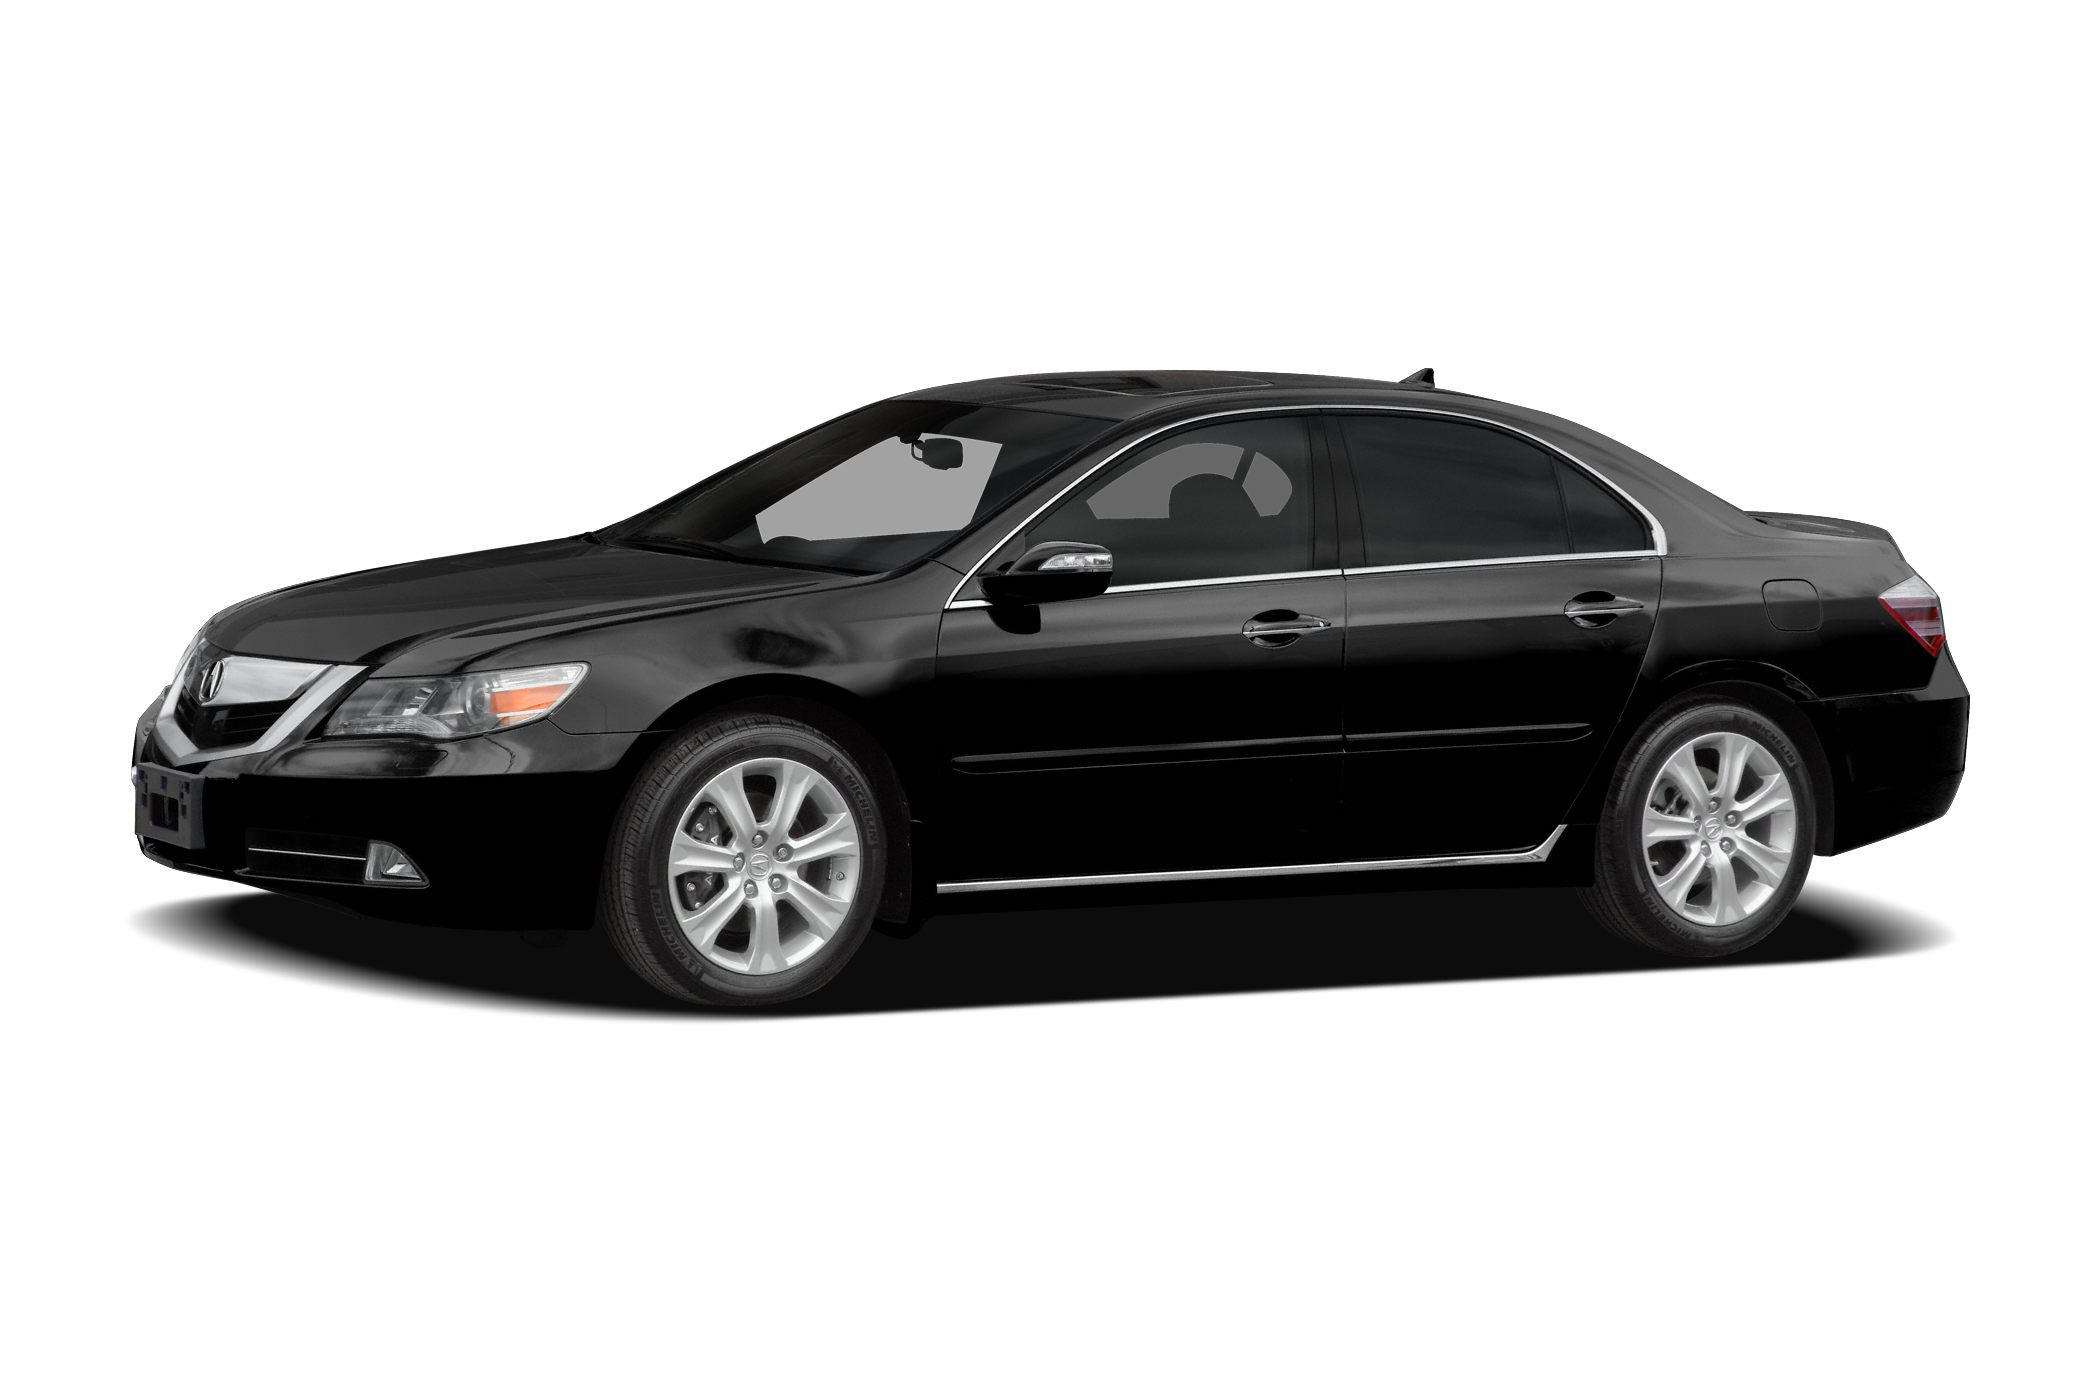 2010 Acura RL 37 Miles 48983Color Black Stock A021429A VIN JH4KB2F60AC002078